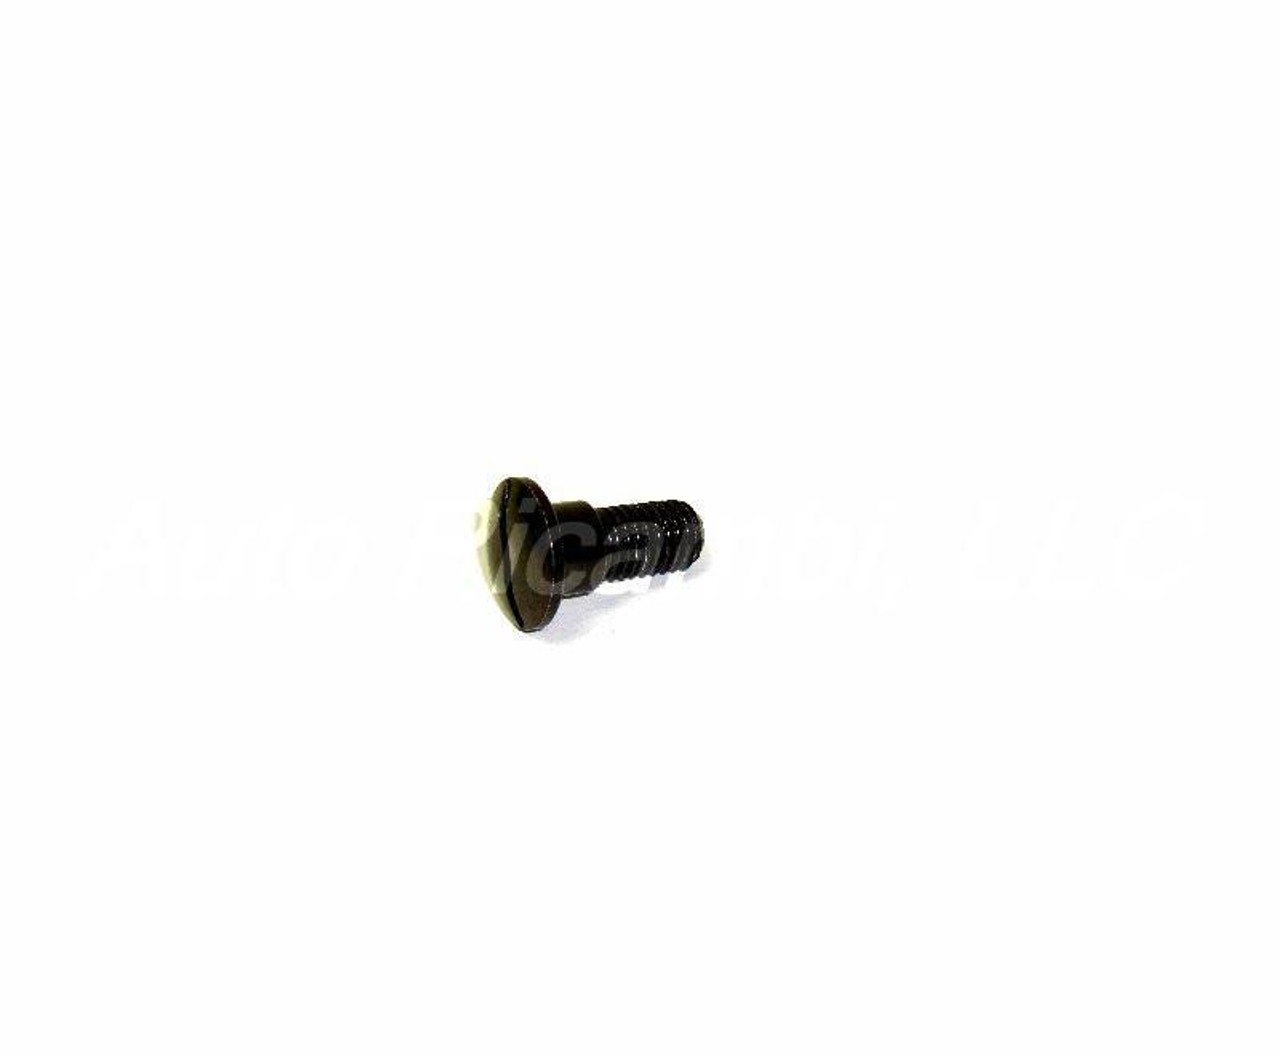 Convertible Top Frame Bolt - 10mm Slotted